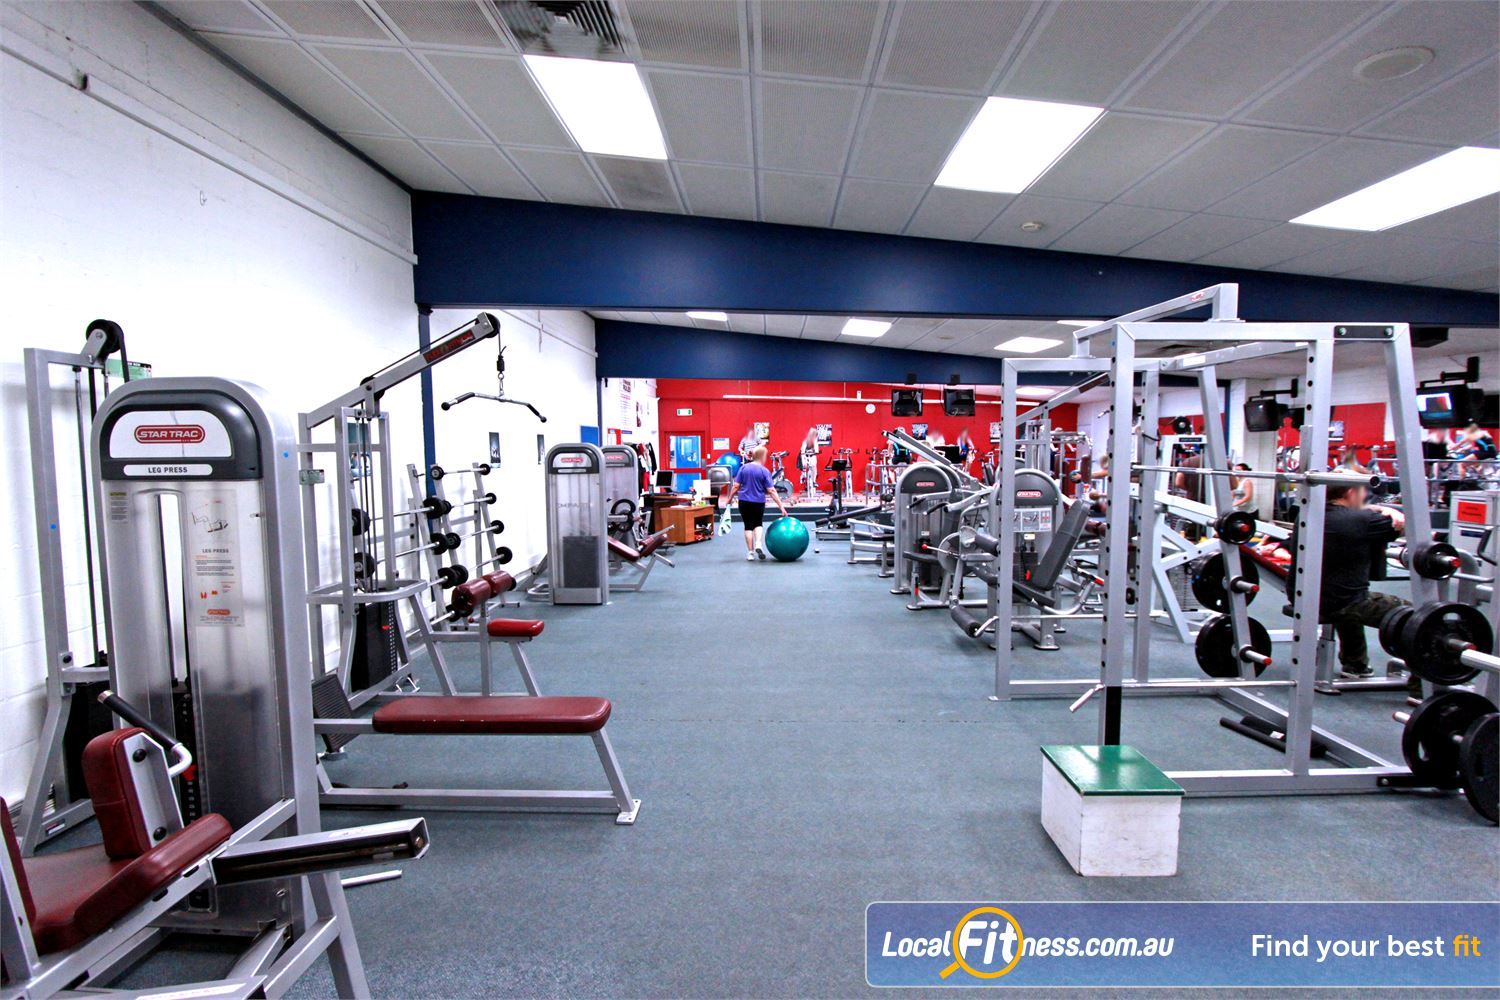 East Keilor Leisure Centre Near Keilor Park The East Keilor gym offers a relaxed and non-threatening environment.